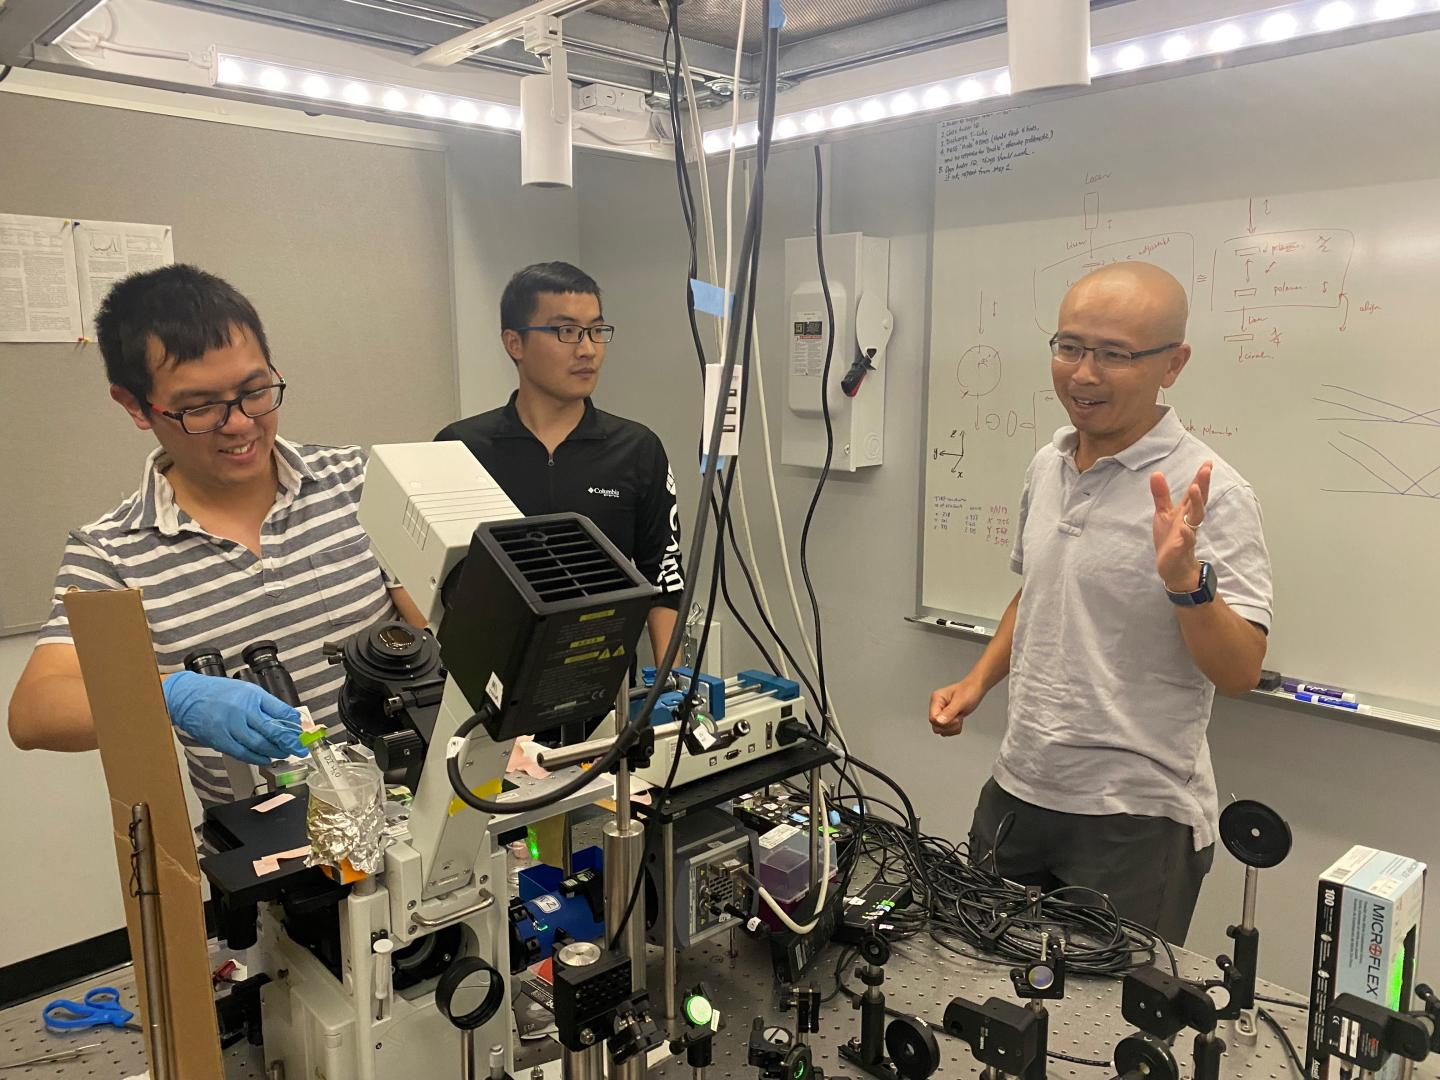 Dr. Rong Ye (left), Dr. Ming Zhao (center), and Dr. Peng Cheng (right) at Cornell discuss their Army-funded research that identifies a new chemistry approach that could remove micropollutants from the environment.  CREDIT Cornell University